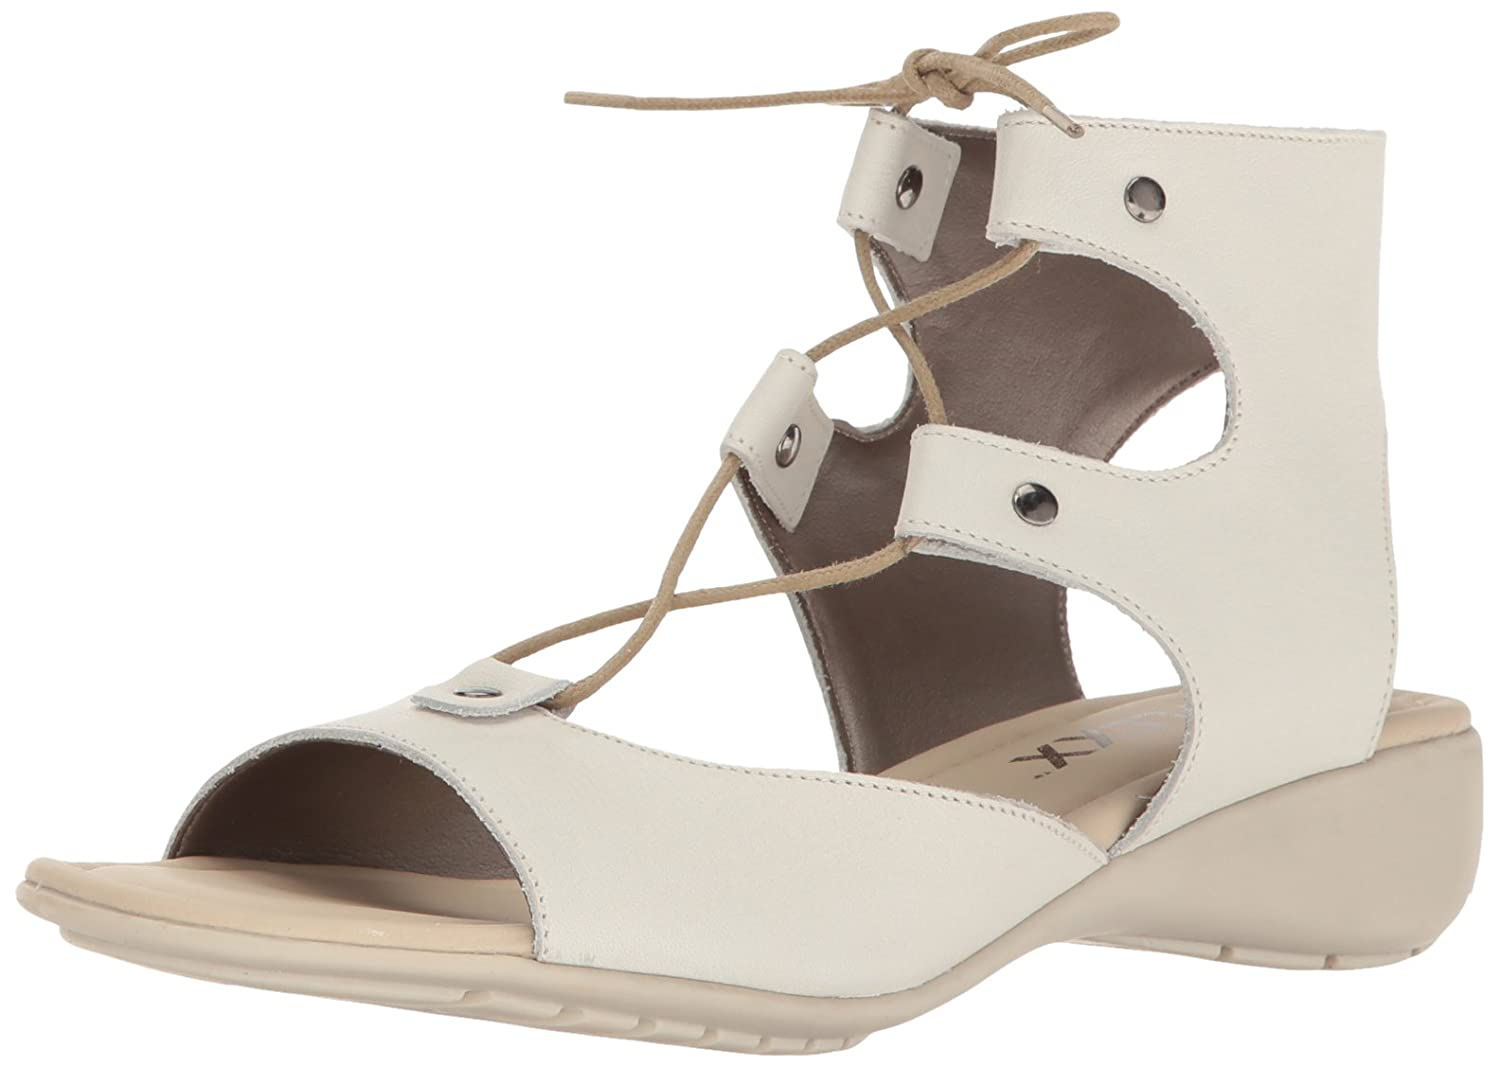 0107d2d9ecba The FLEXX Womens Band on the Run Gladiator Sandal